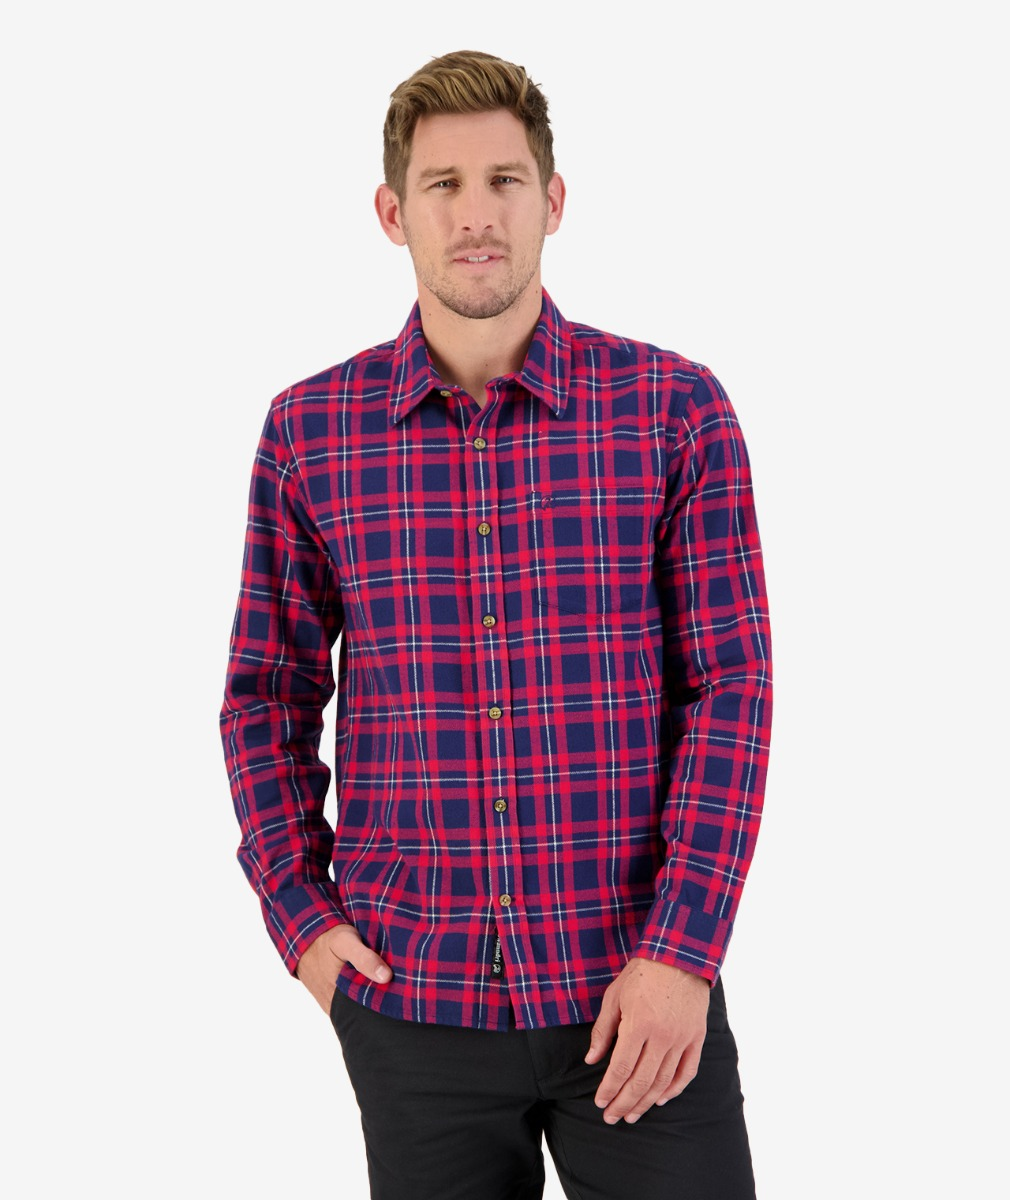 Moa Creek L/S Shirt in Red